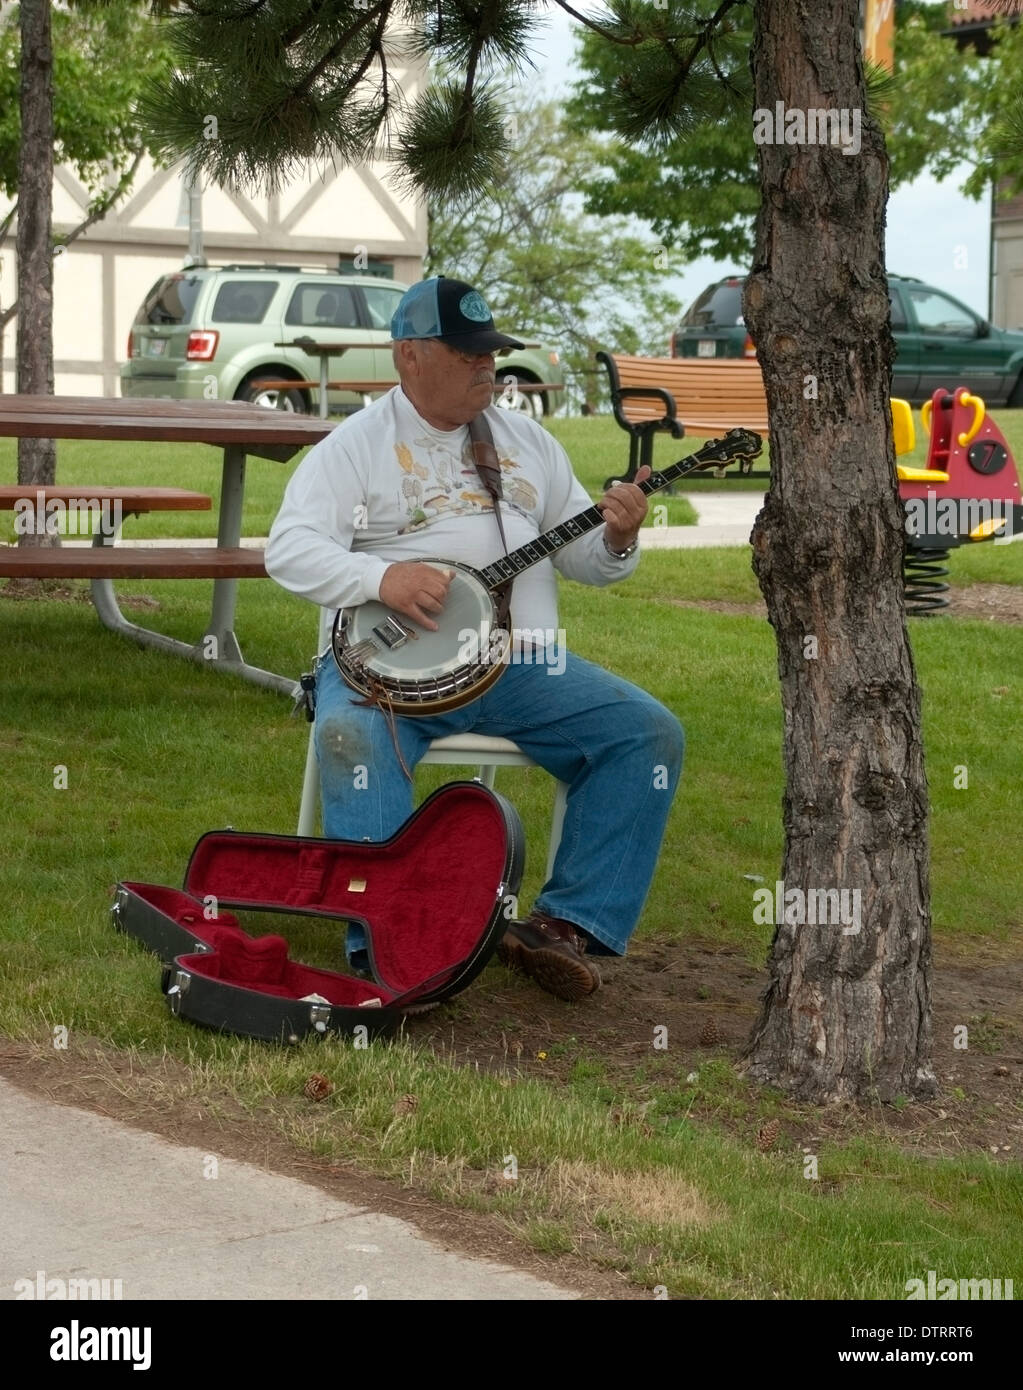 Banjo player in public park - Stock Image